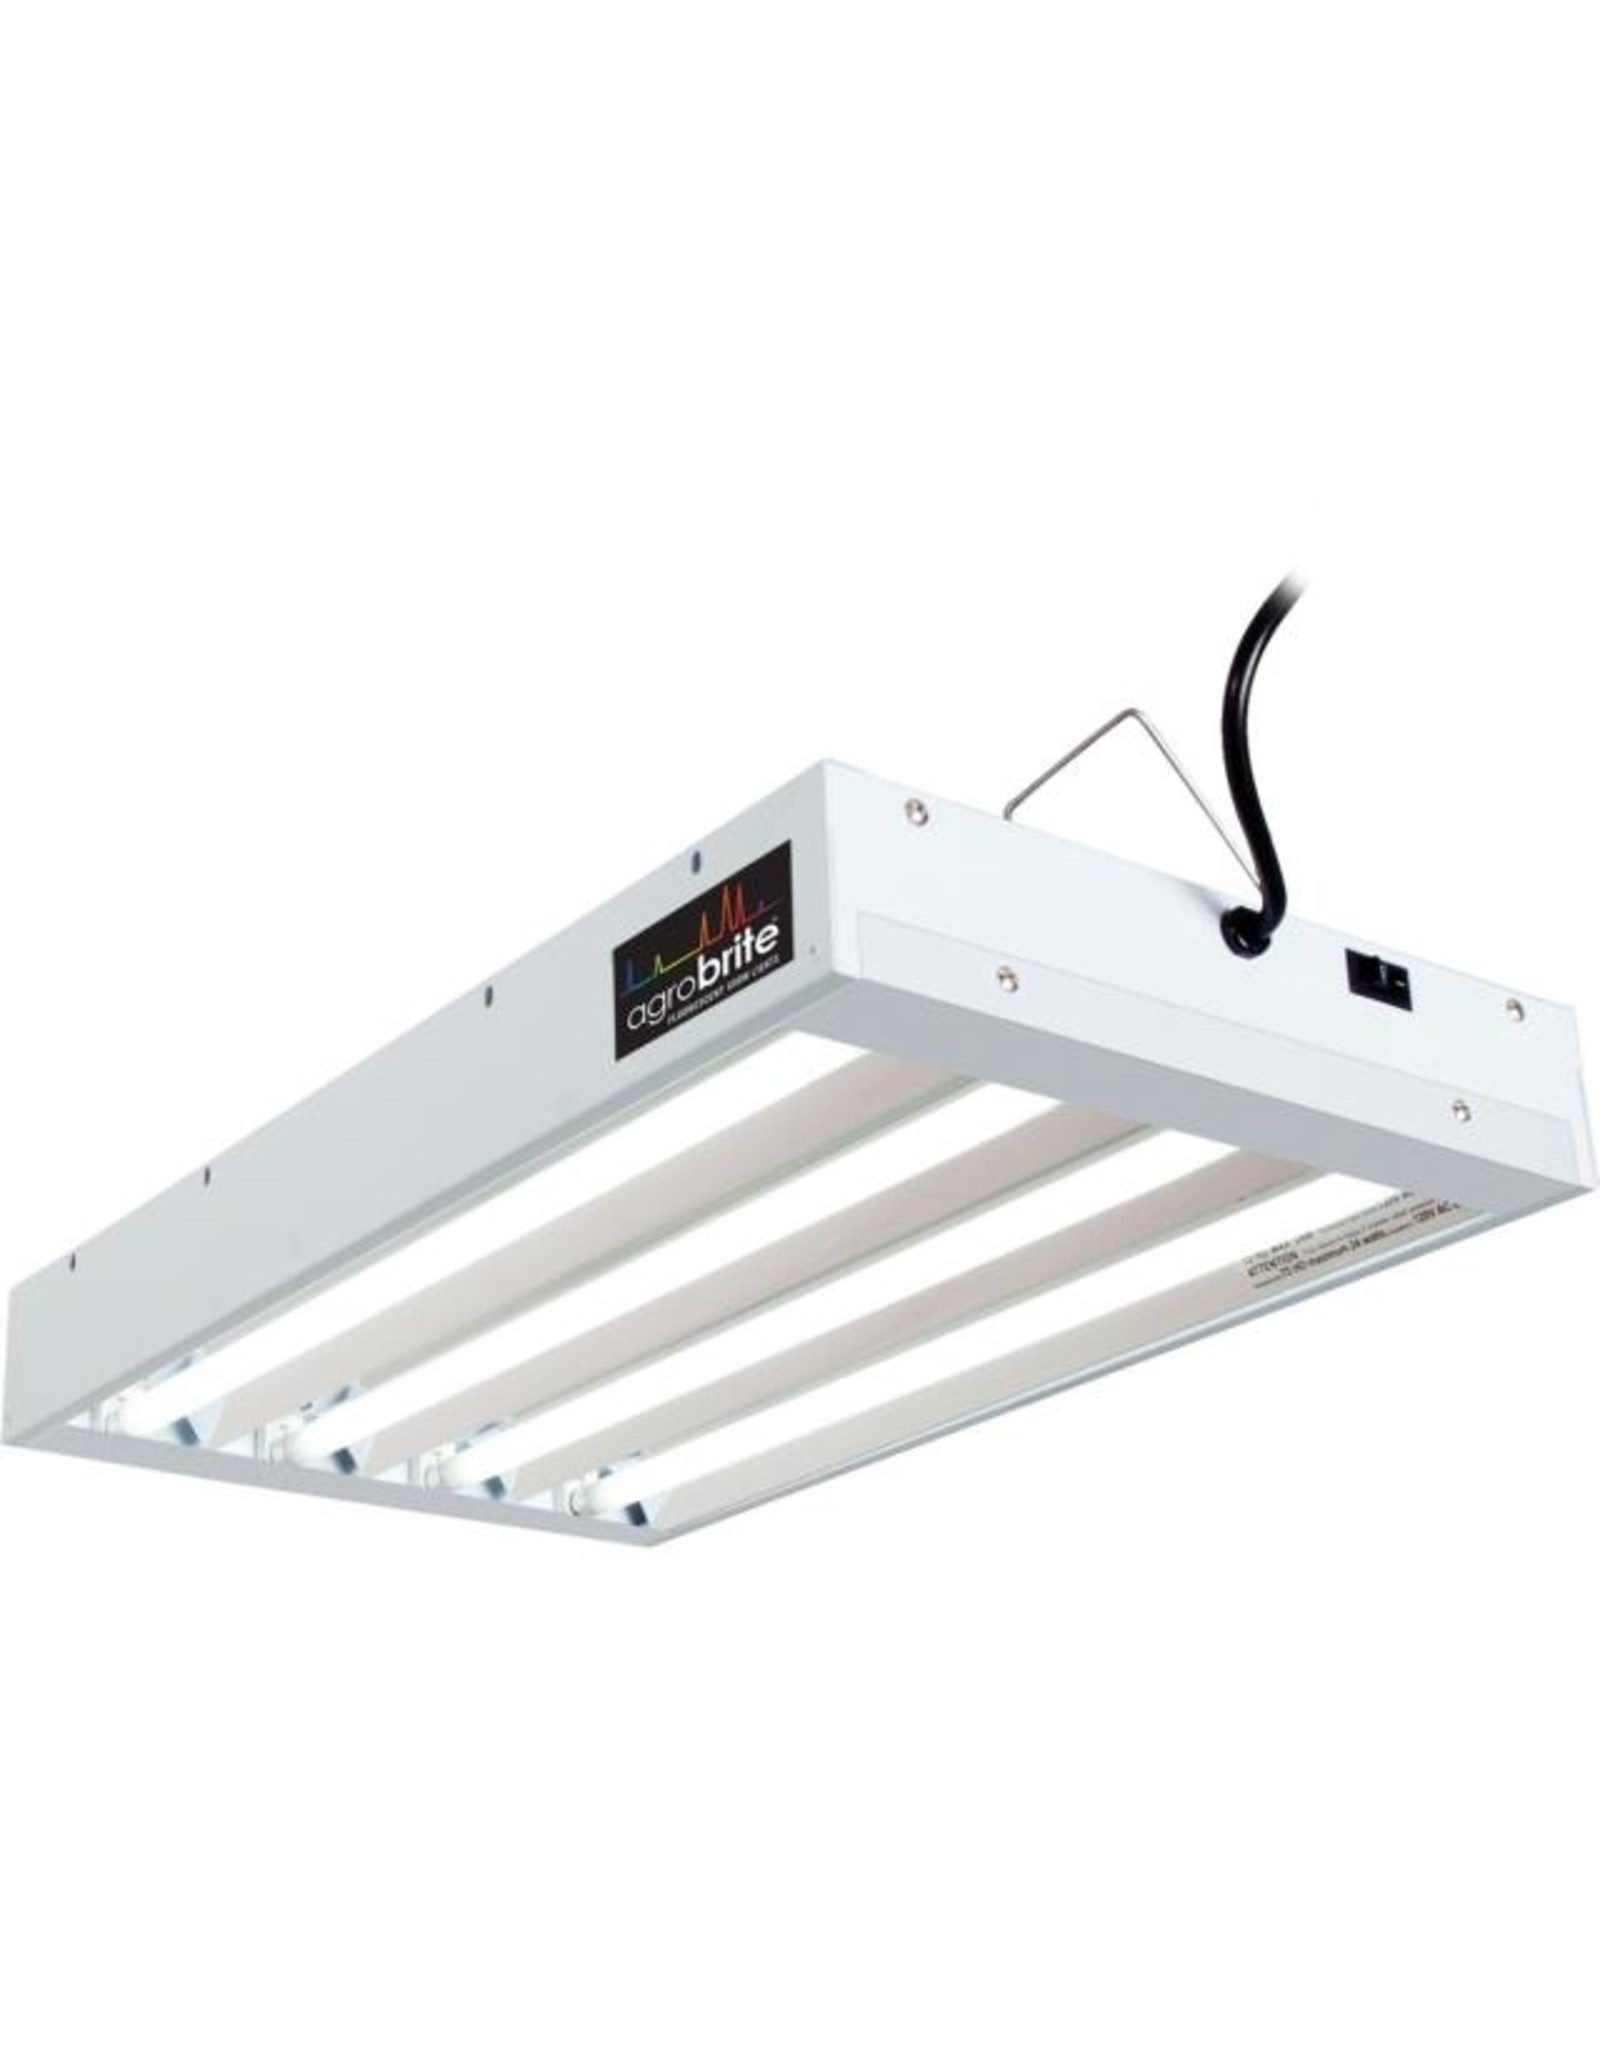 AgroBrite Agrobrite T5 96W 2' 4-Tube Fixture with Lamps